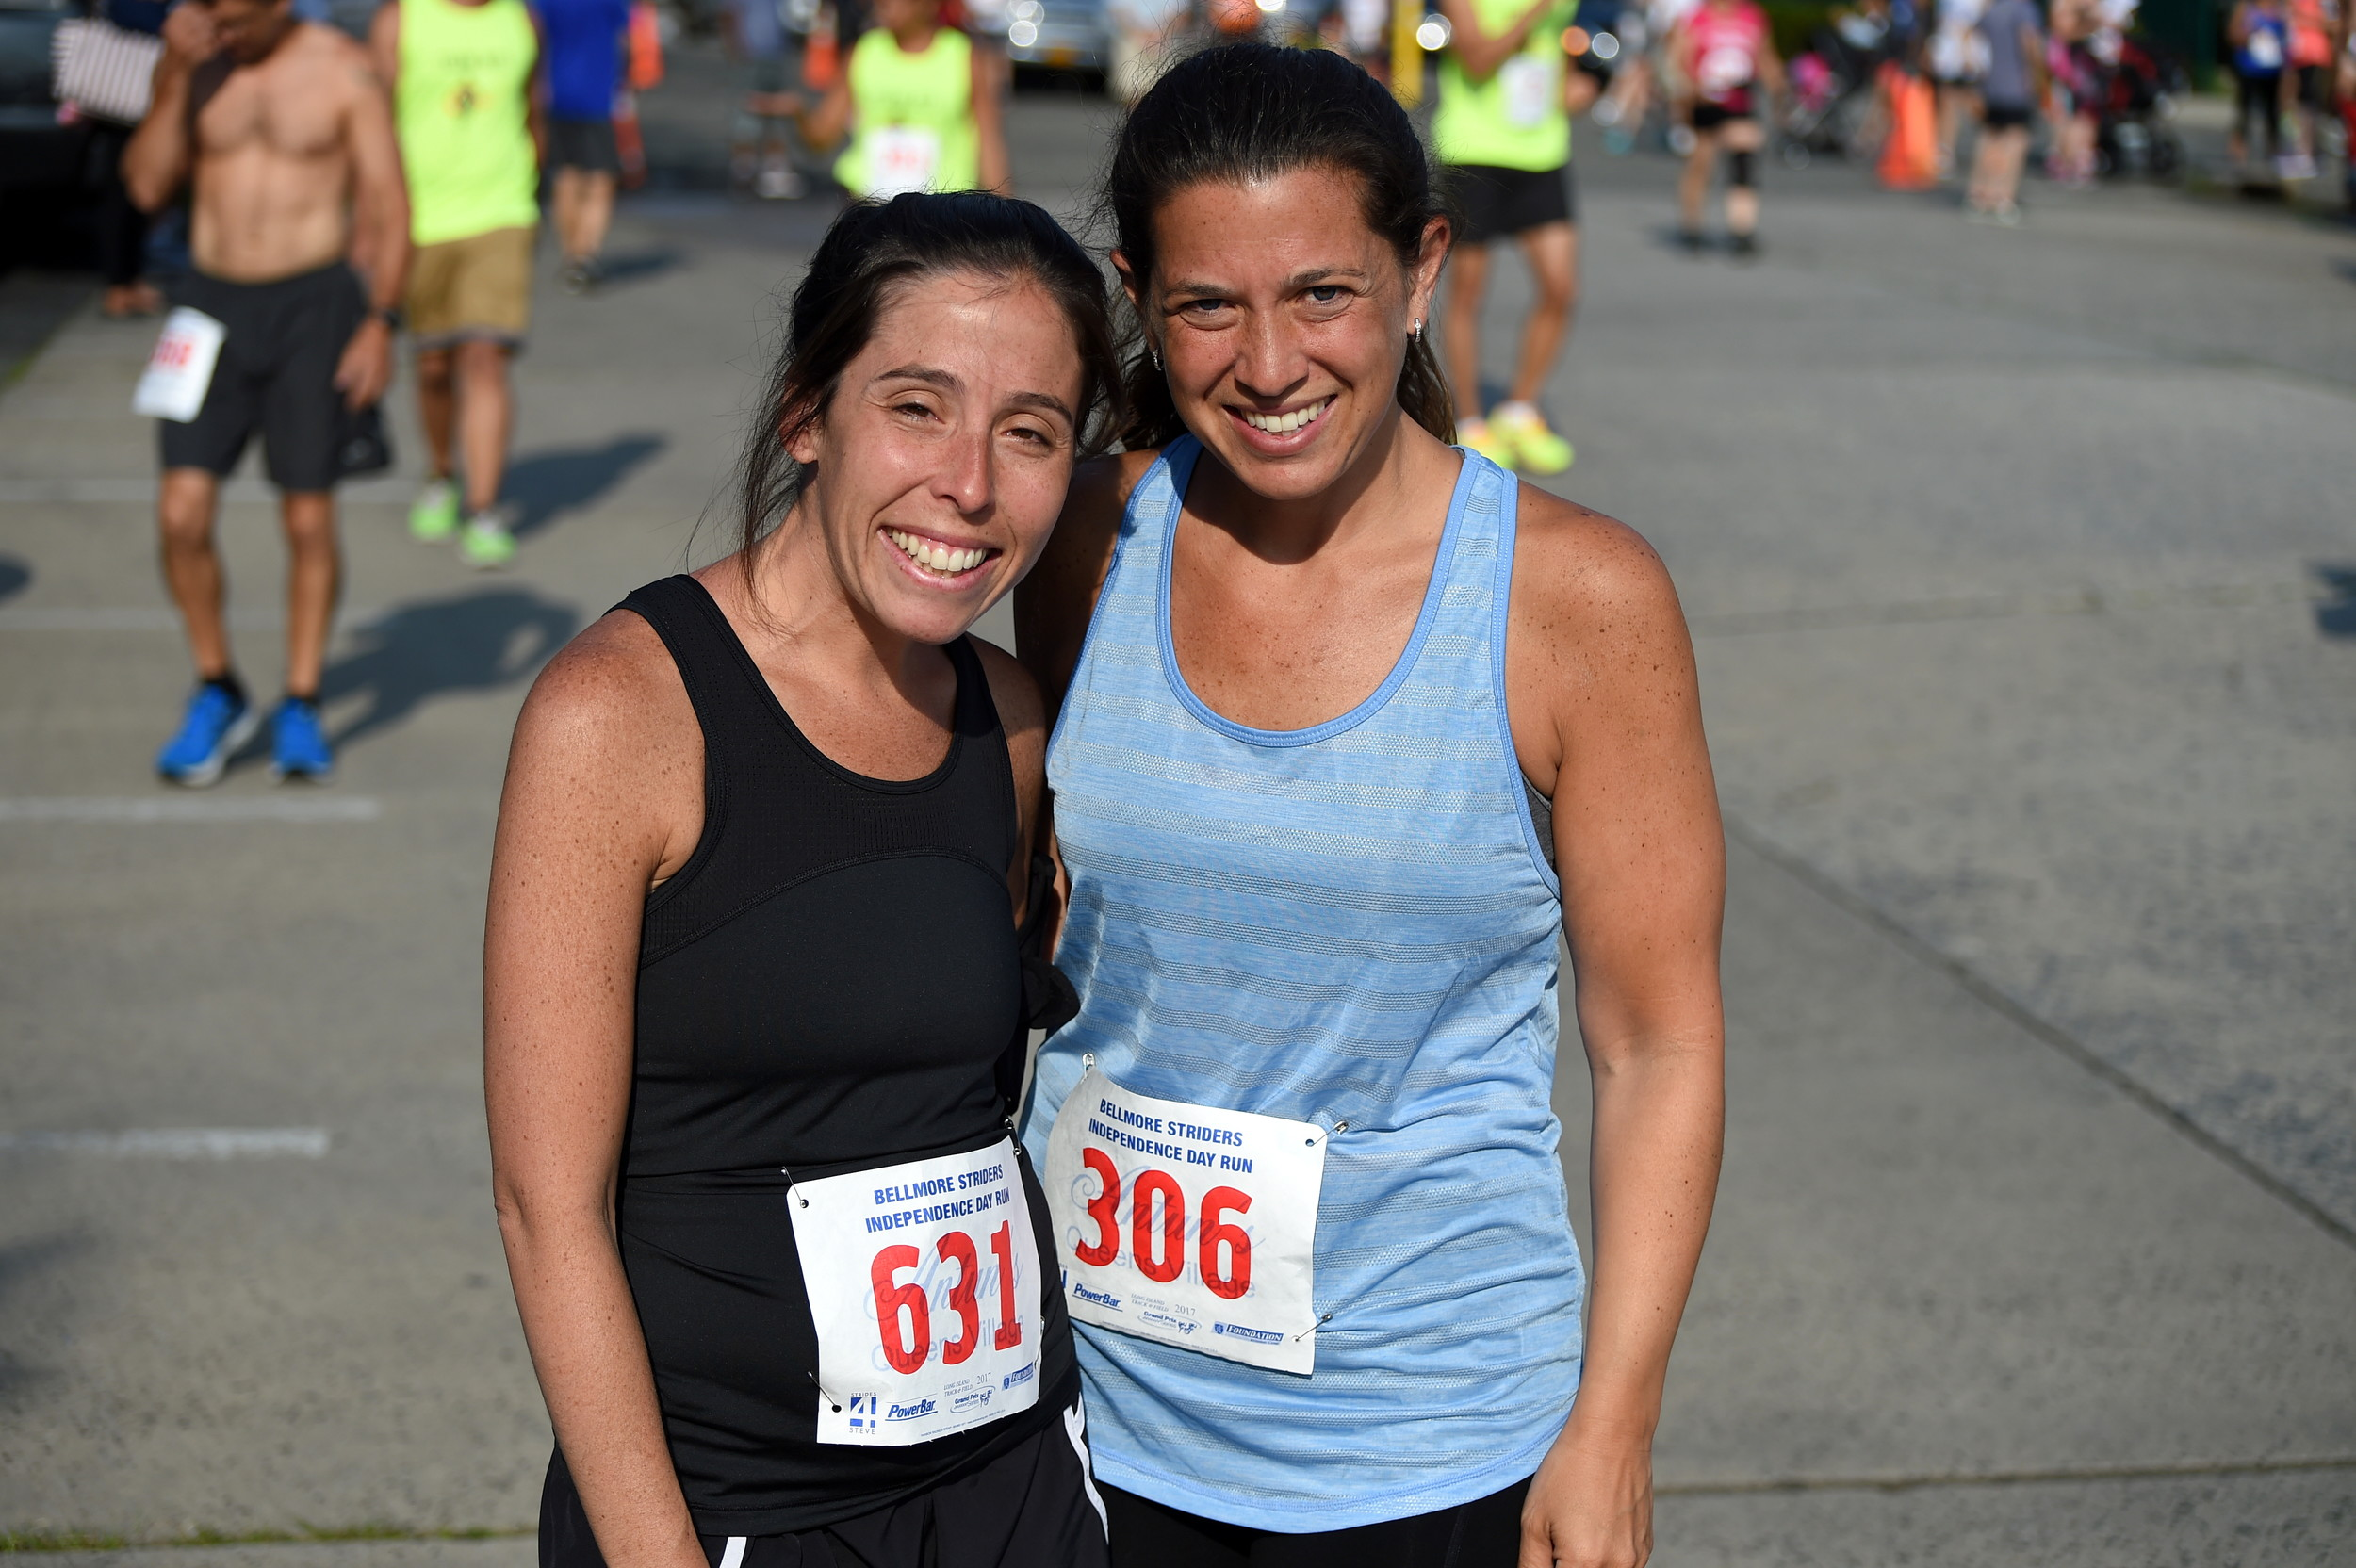 Ilissa Wellem, of Merrick, Robyn Rothman, of Island Park, got ready for four-mile race.